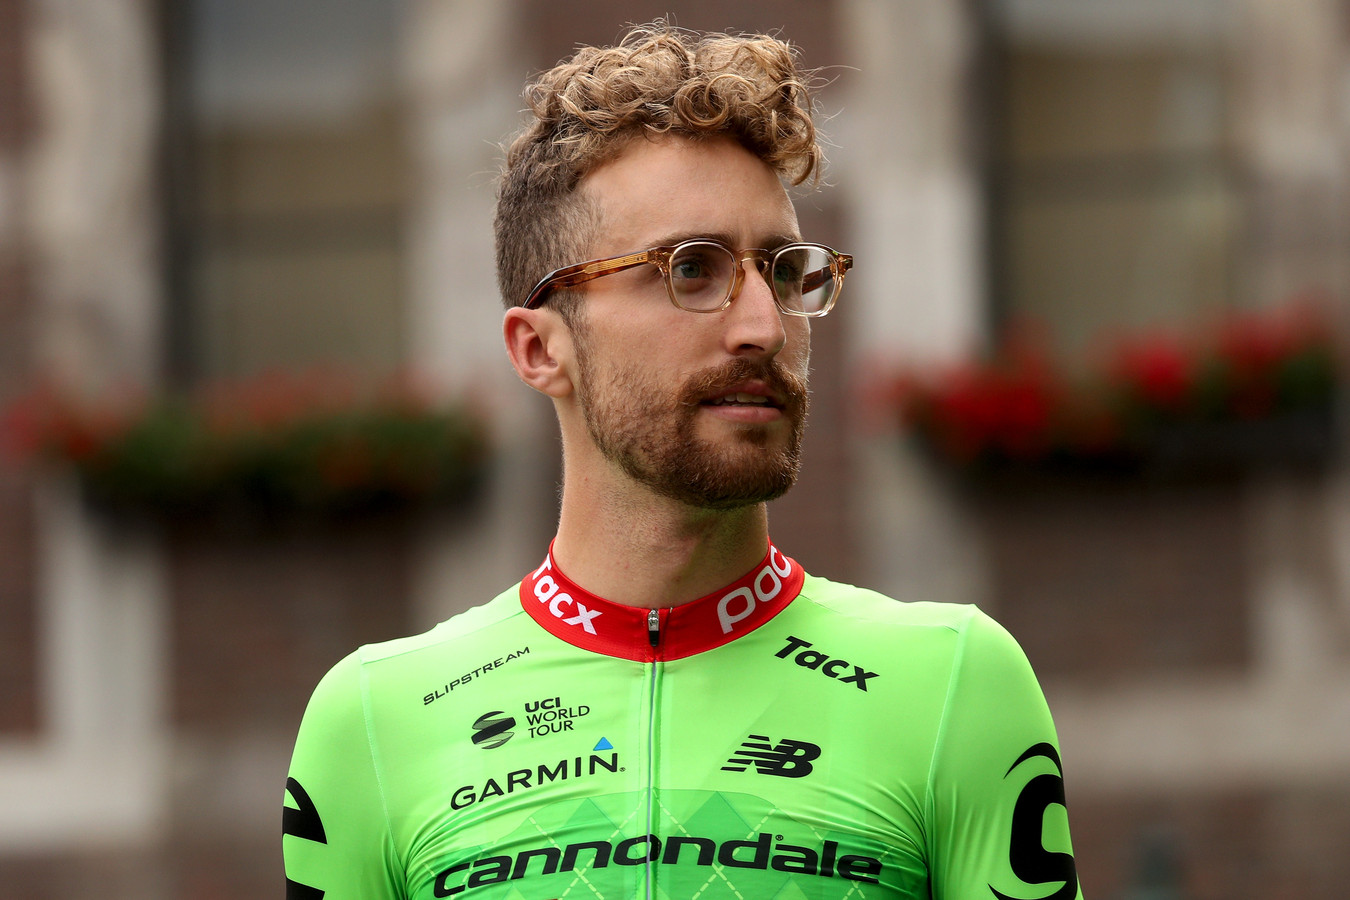 Taylor Phinney.